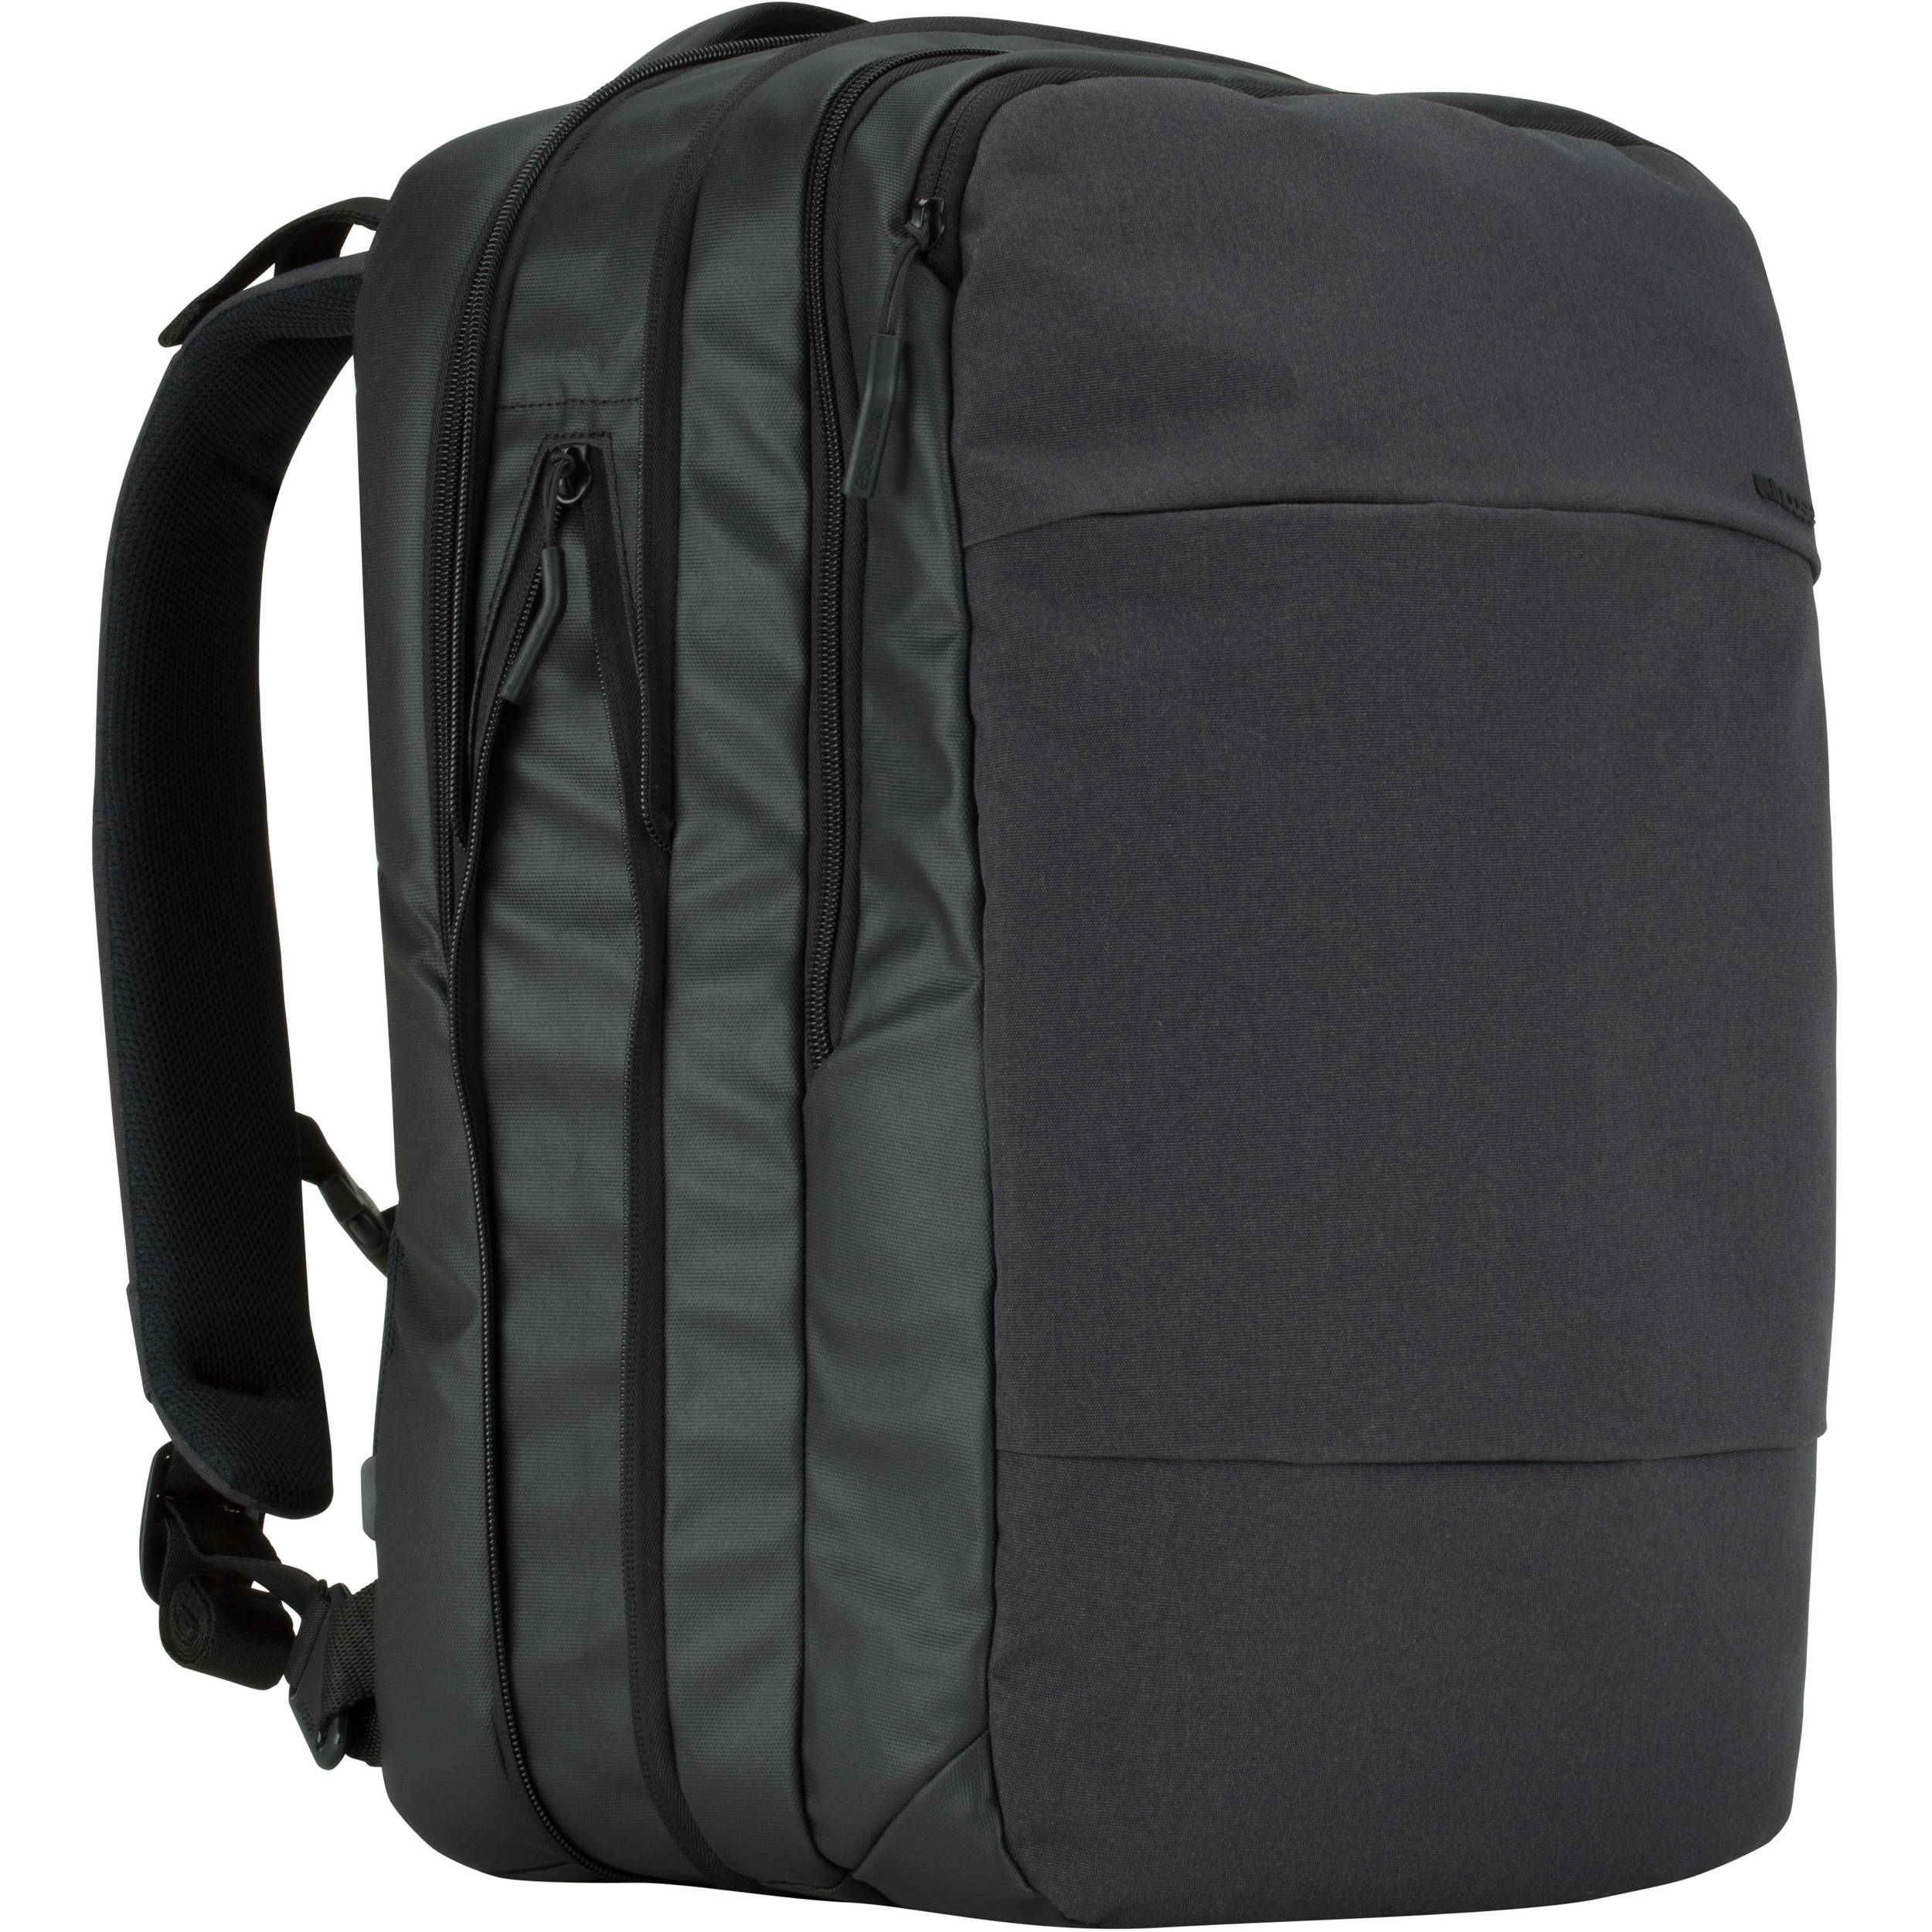 34cd121dbb73 Incase Designs Corp City Commuter Backpack (Black)